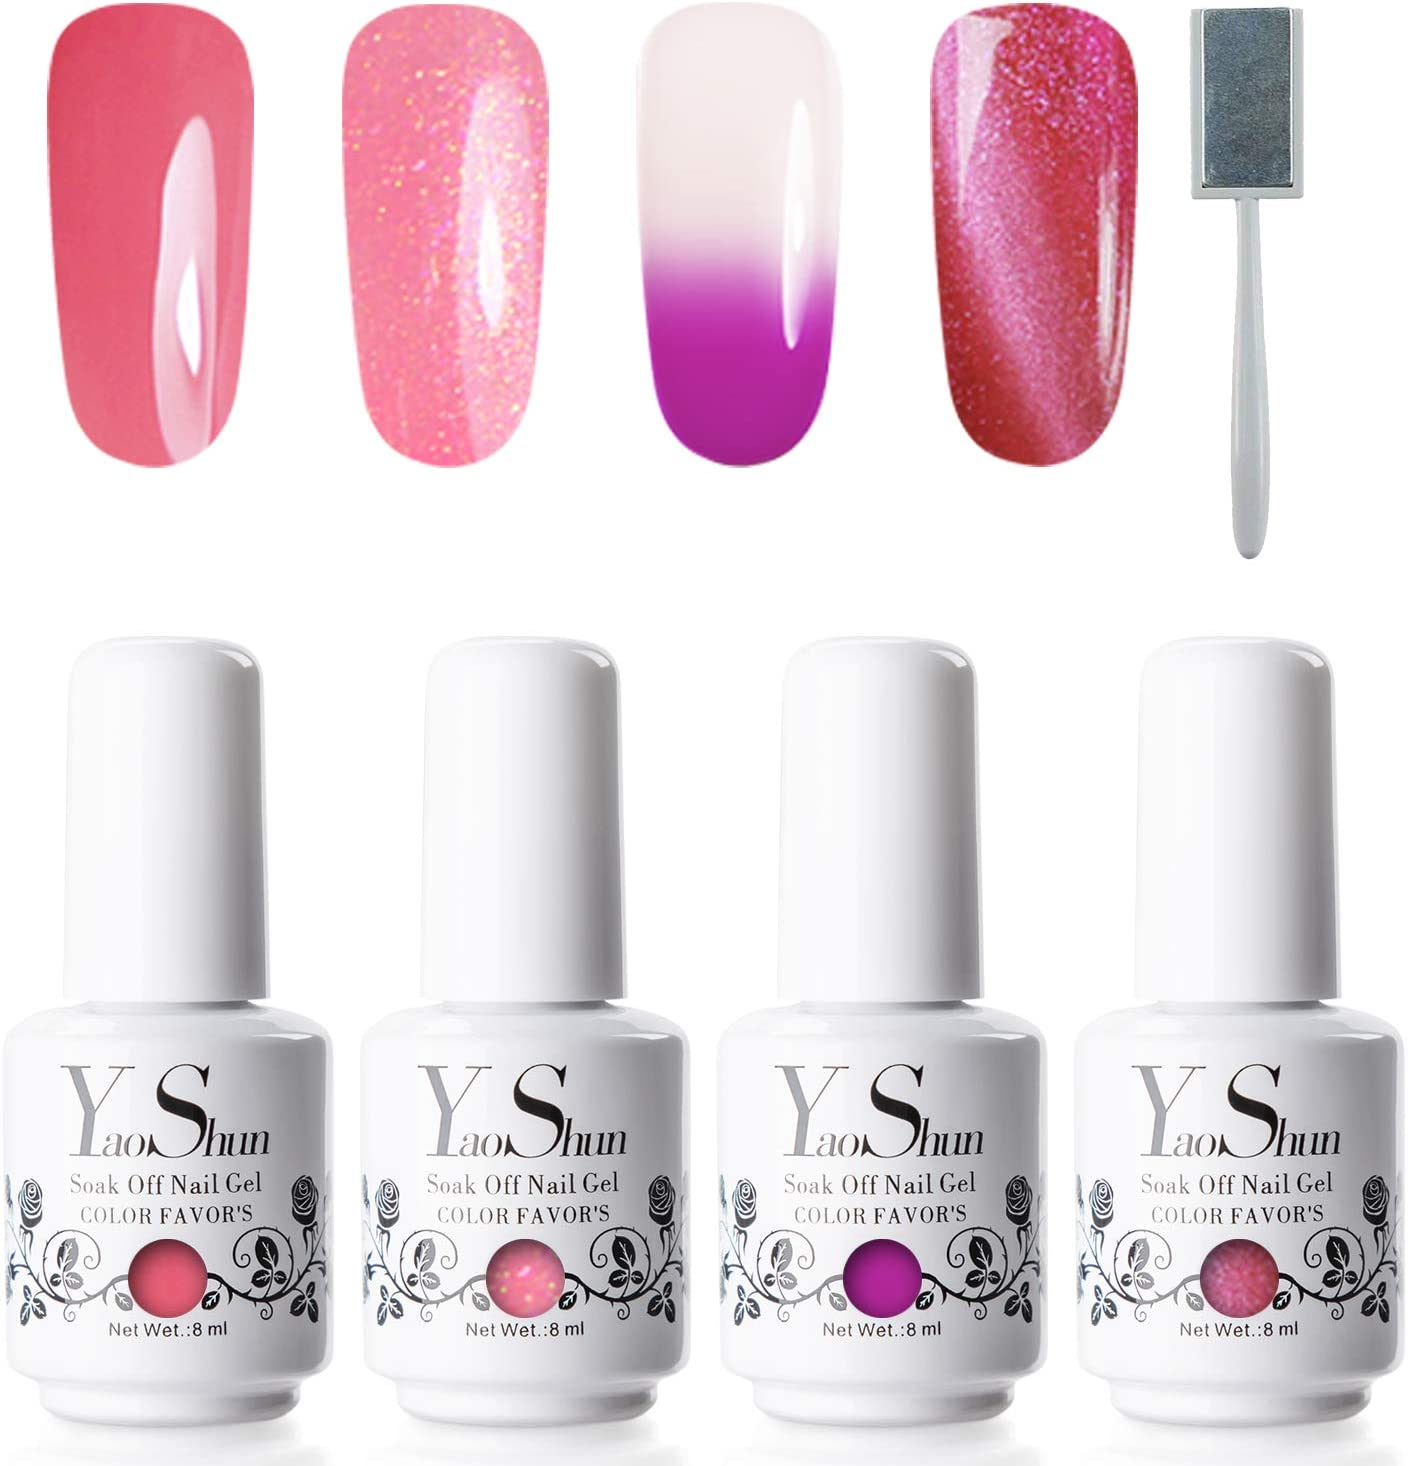 Gel Polish Kit - Soak off Nail Gel Nail Art, Gel Polish Set Manicure at Home UV Nail Gel Kit